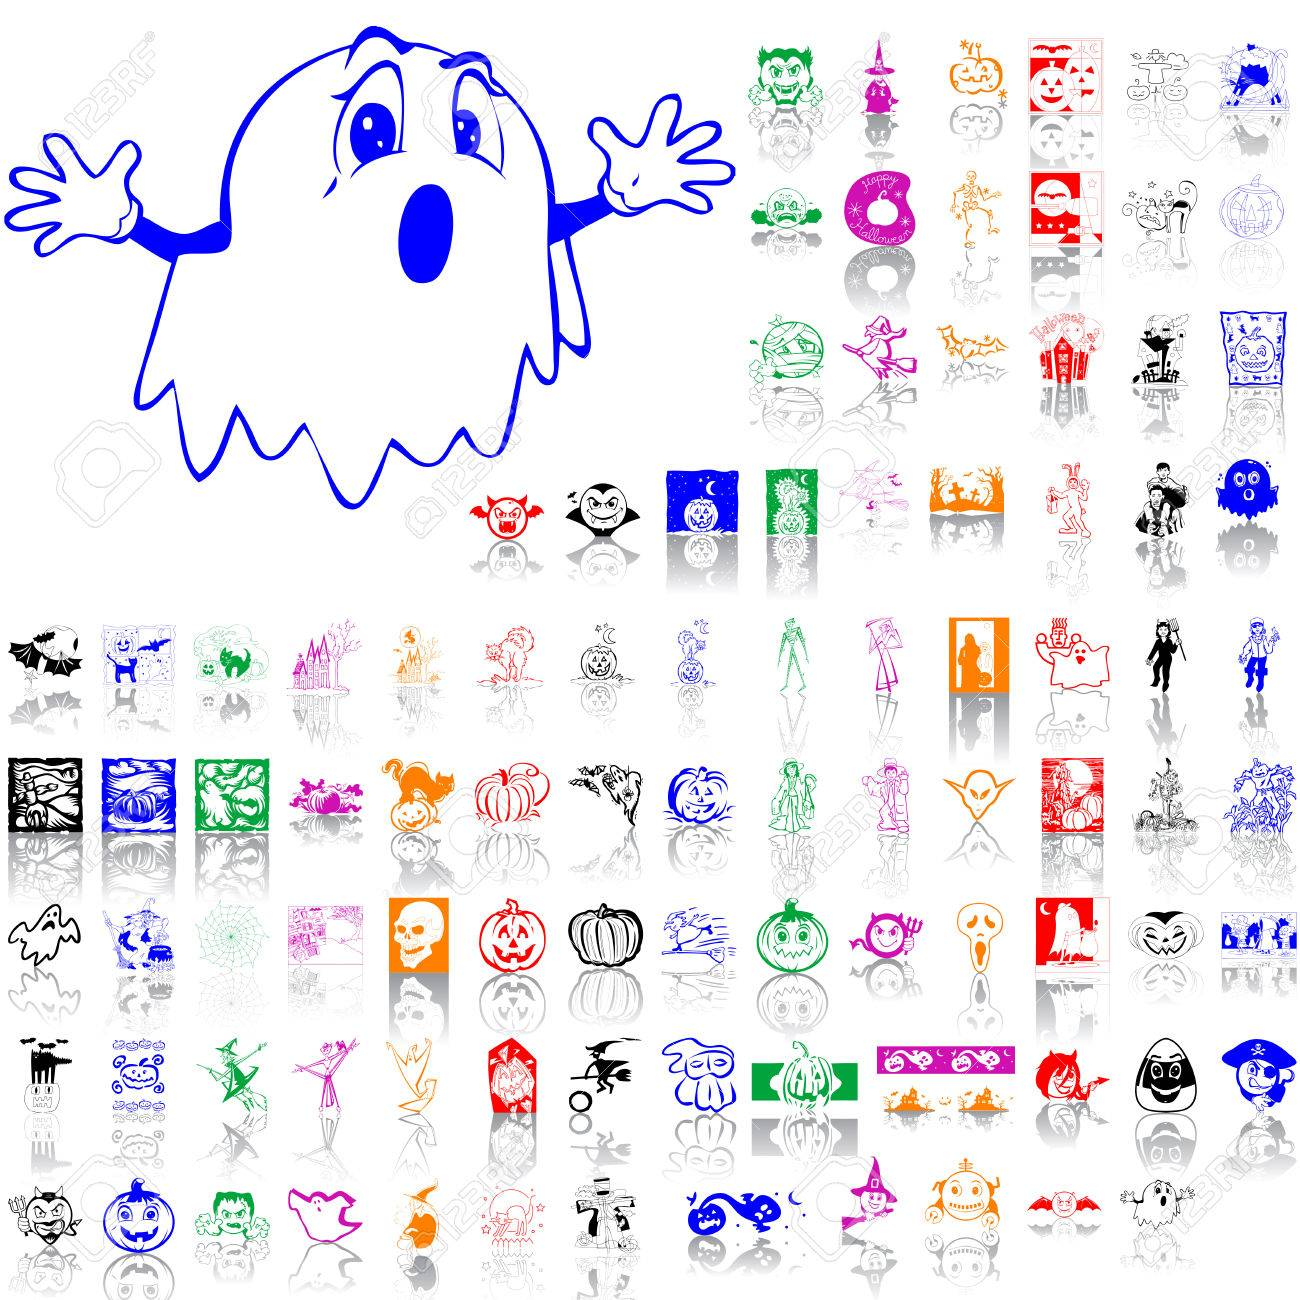 Set of Halloween sketches. Part 6. Isolated groups and layers. Global colors. Stock Vector - 5162093